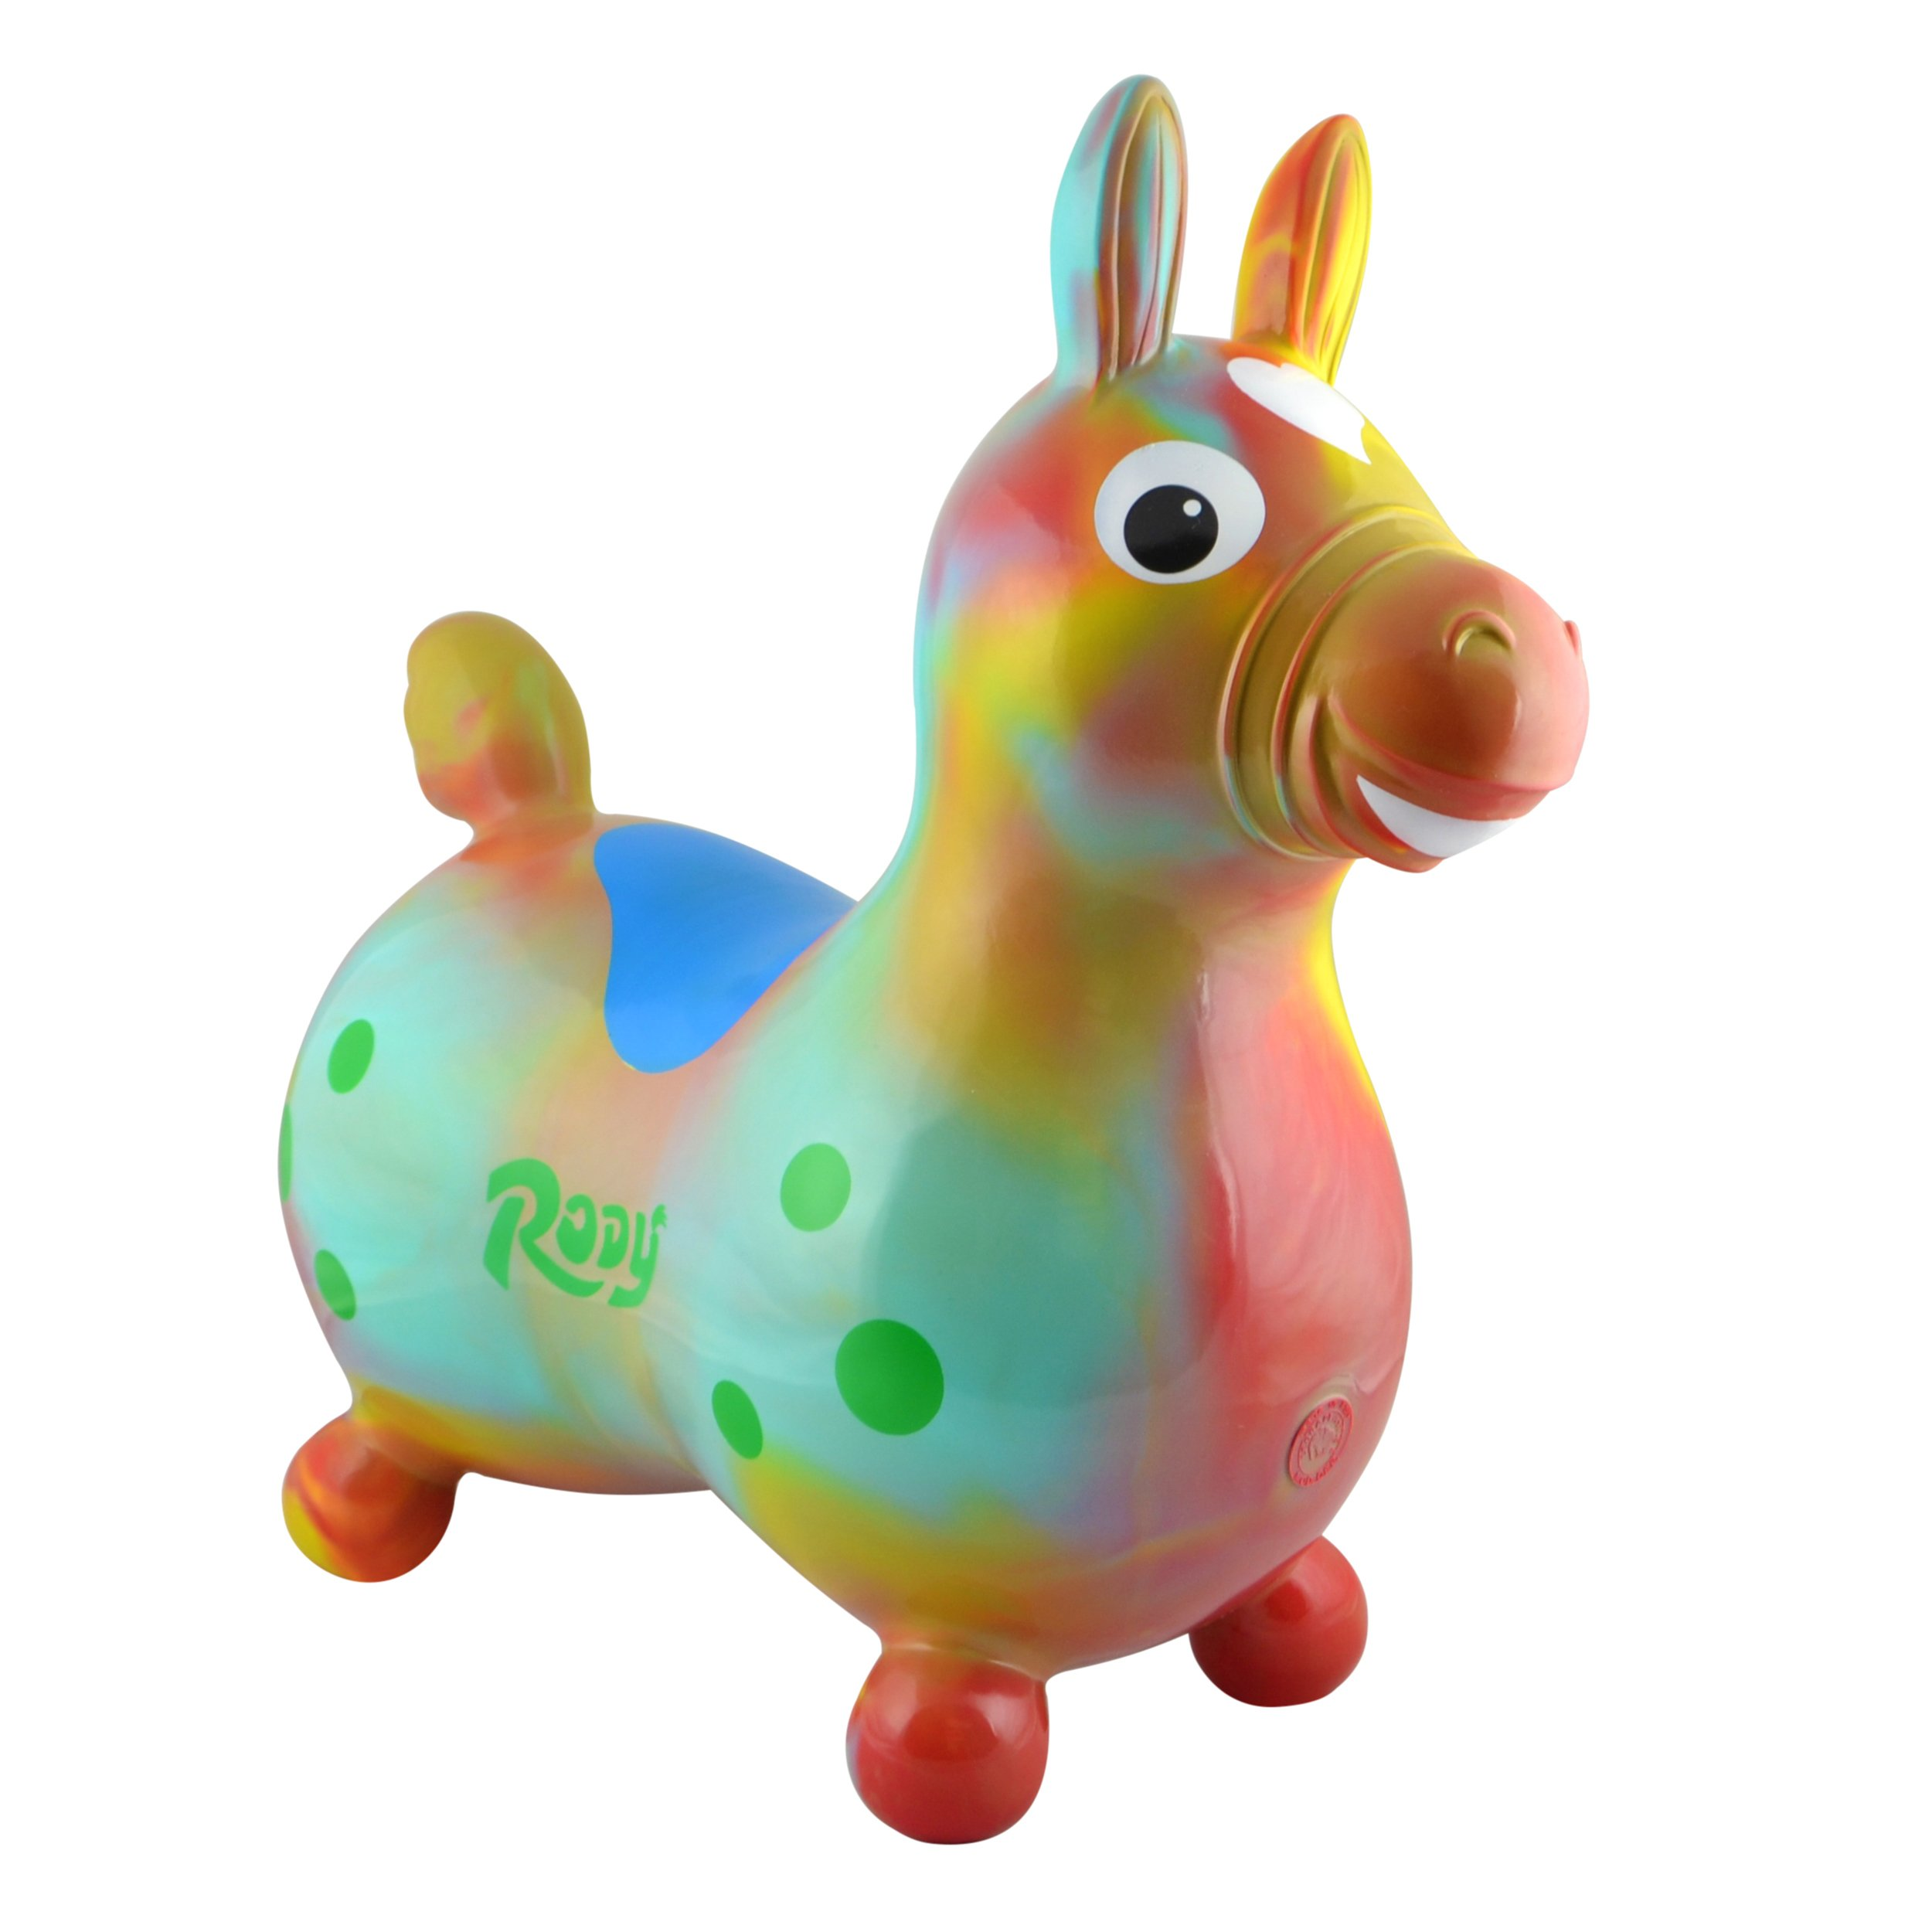 Gymnic Rody Horse Ride On Inflatable Toy - Arte Swirl